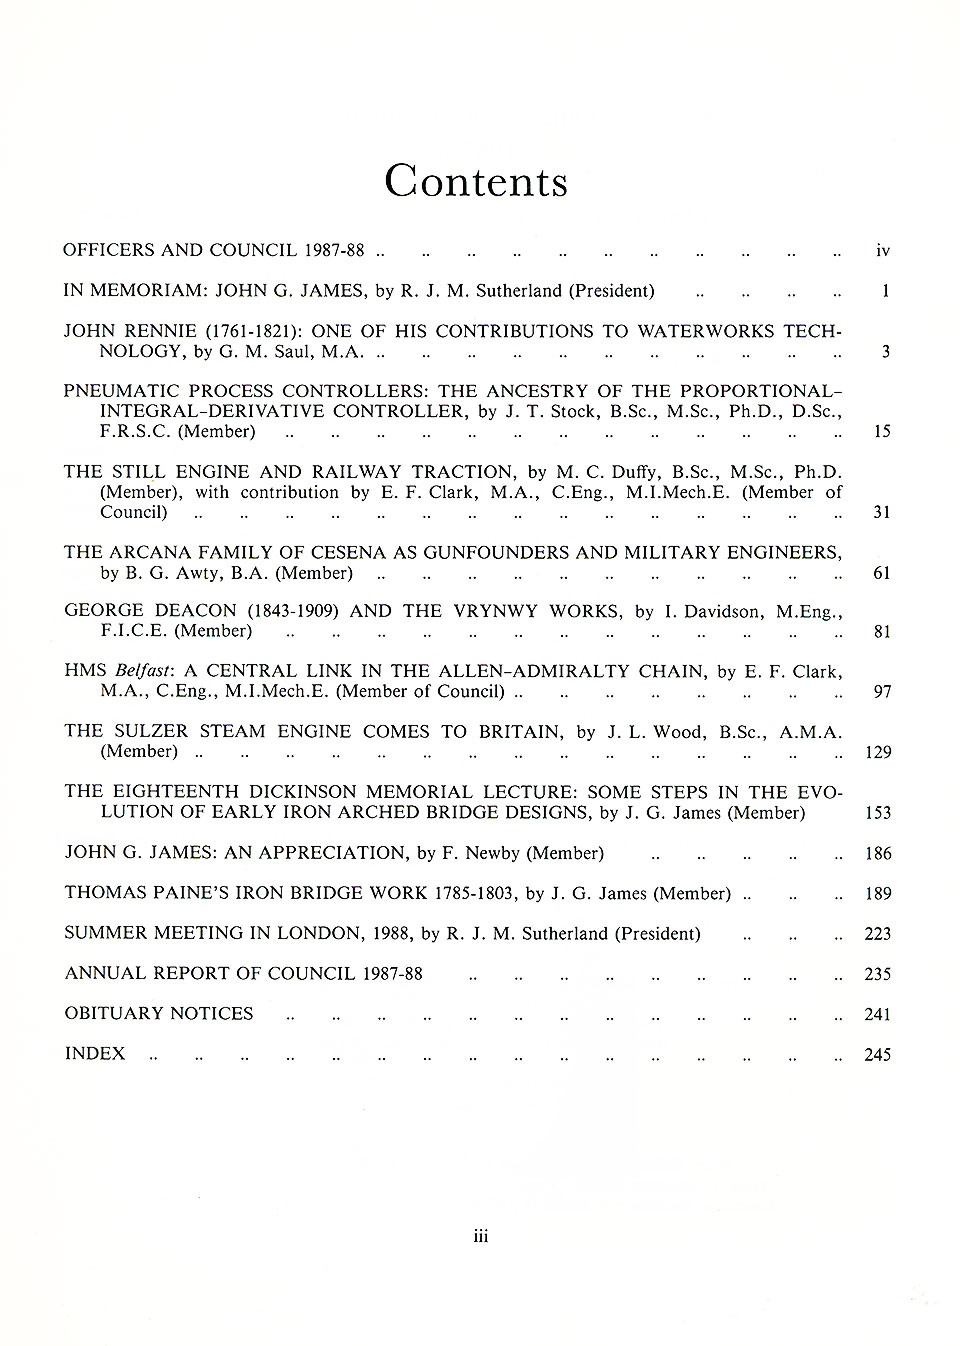 The Journal - V59 No1 1987-88 - contents Paperback (Scrappy Condition)